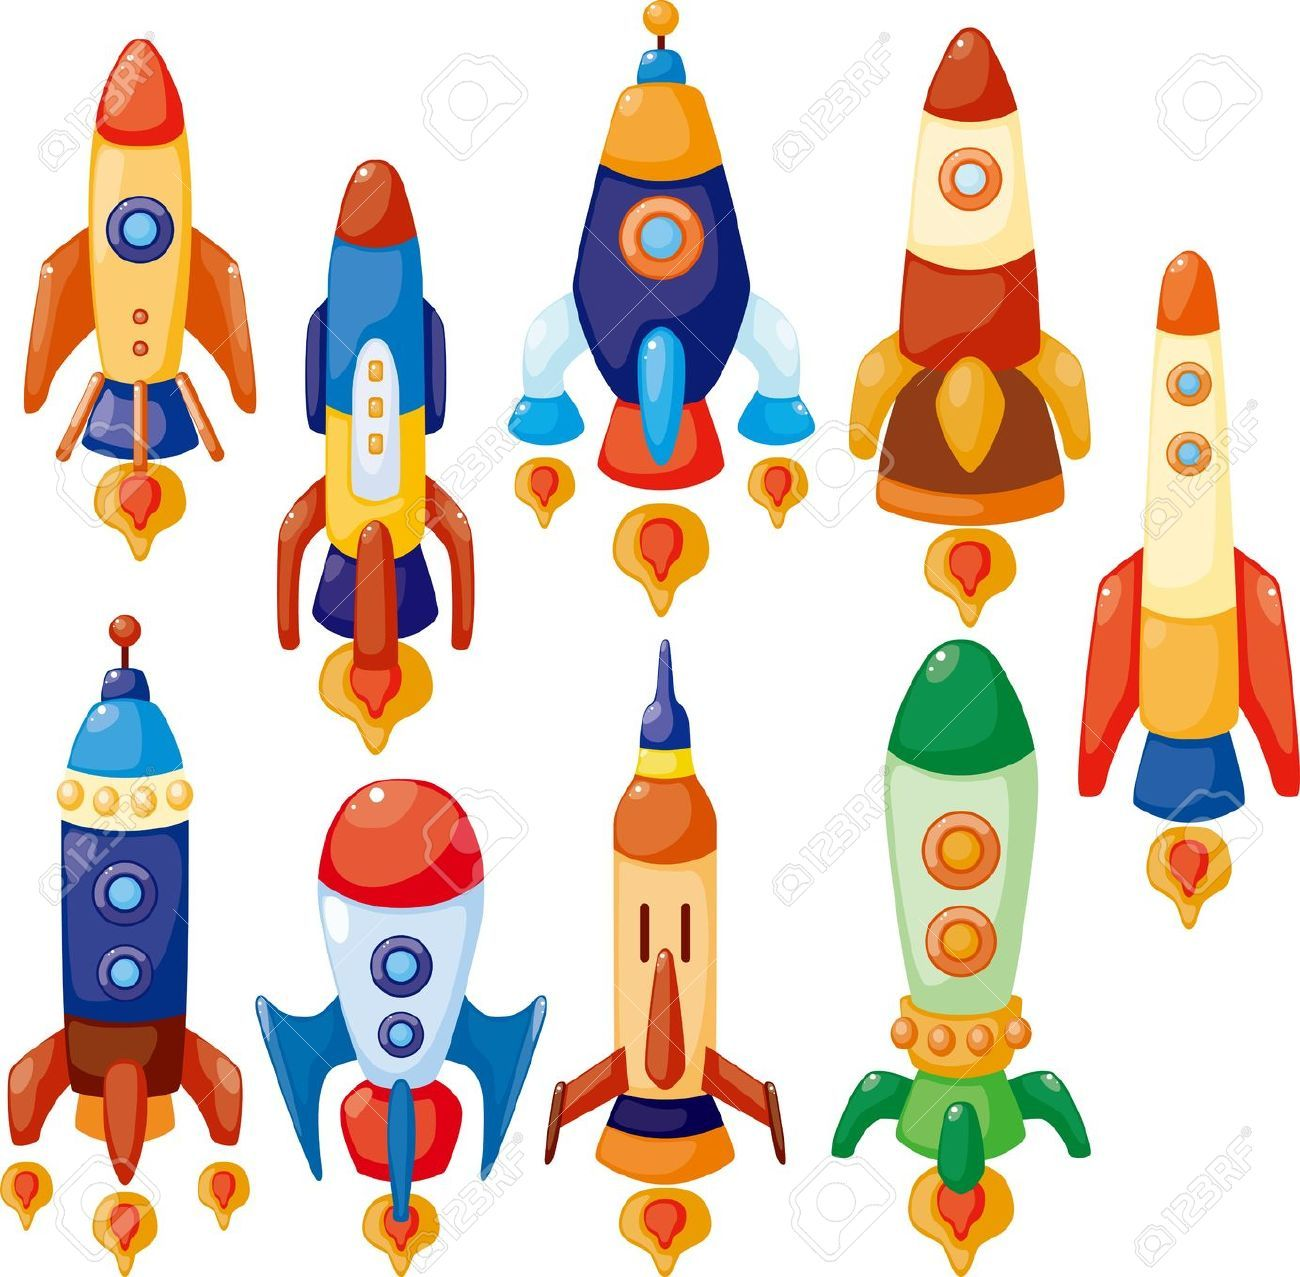 Spaceship Images, Stock Pictures, Royalty Free Spaceship Photos ...